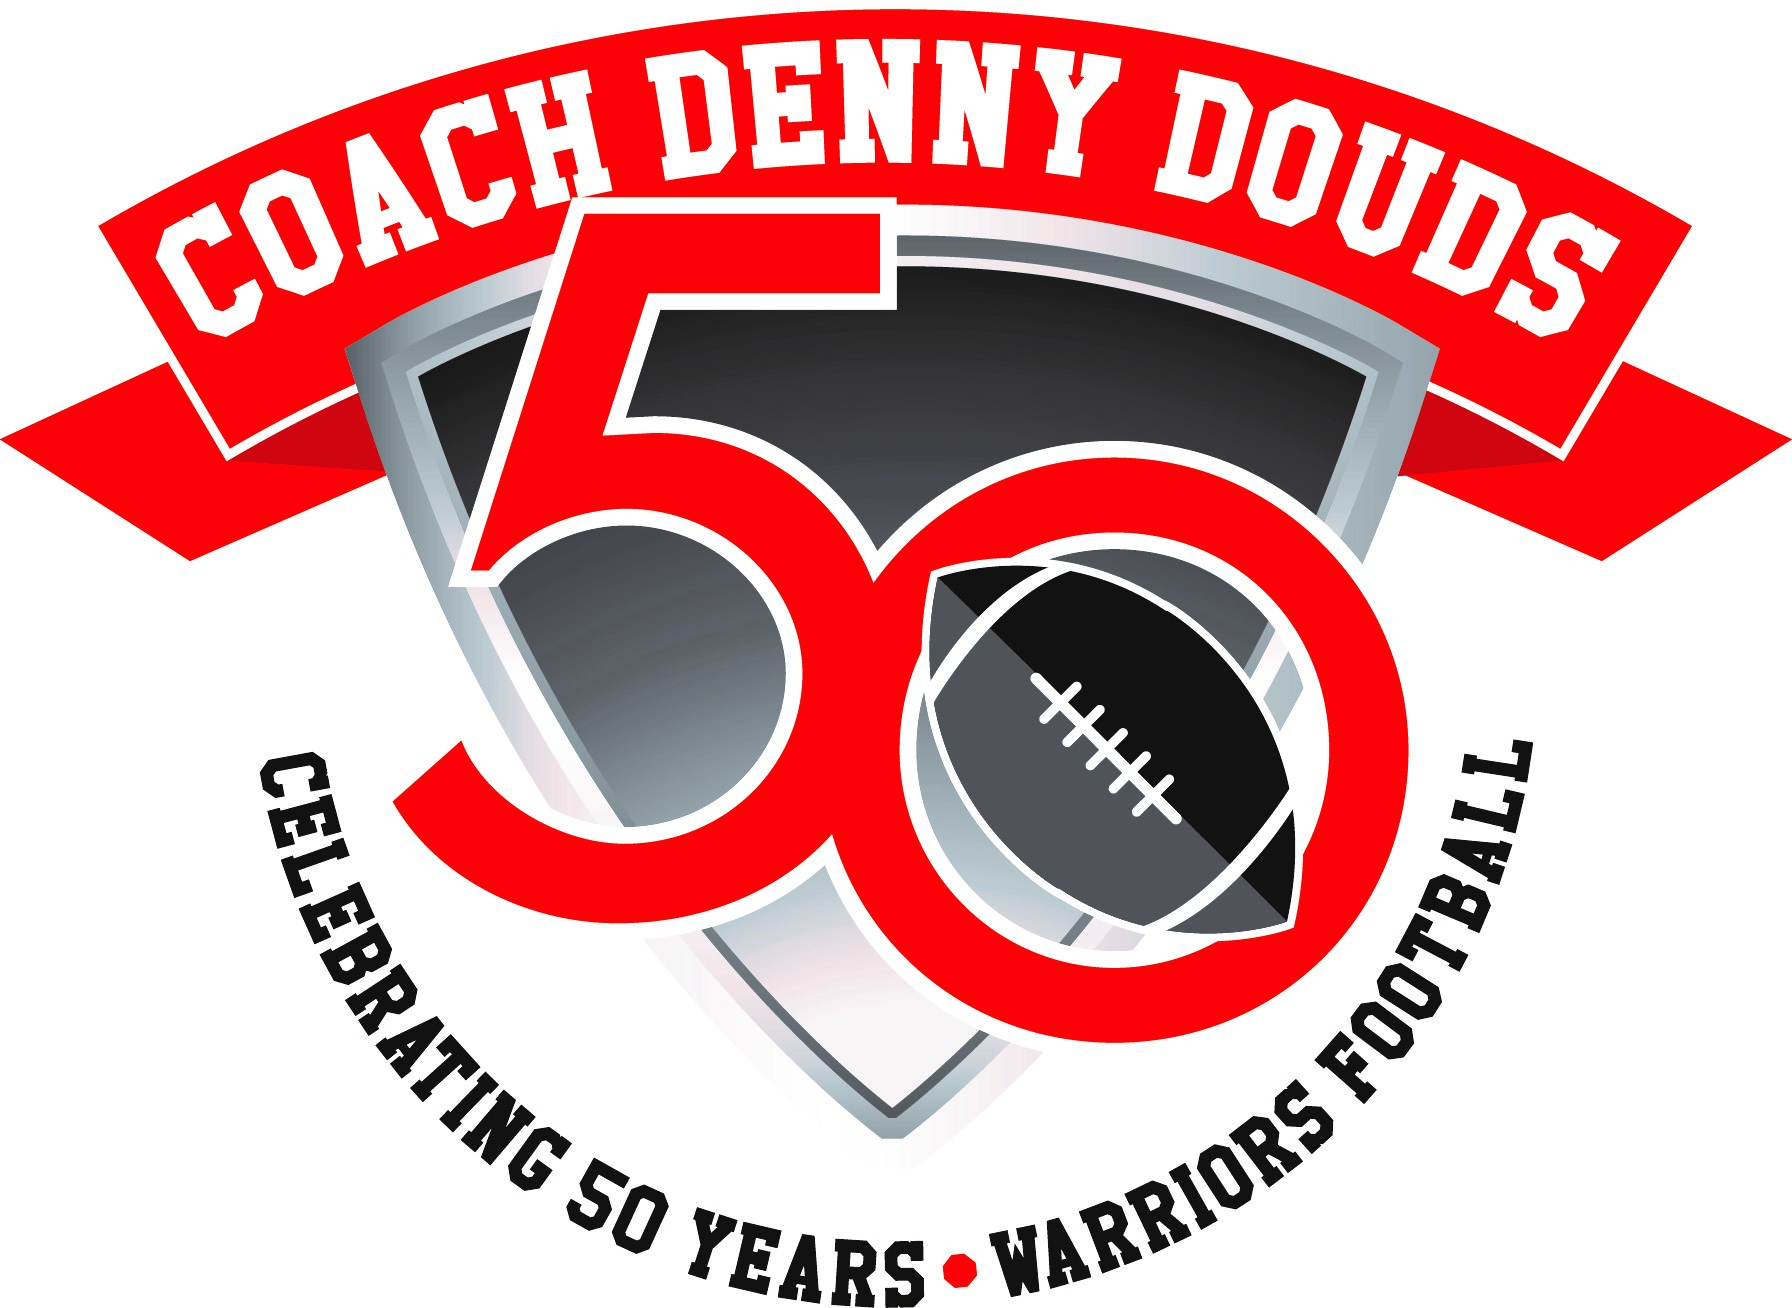 Documentary Video for coach denny douds East Stroudsburg University